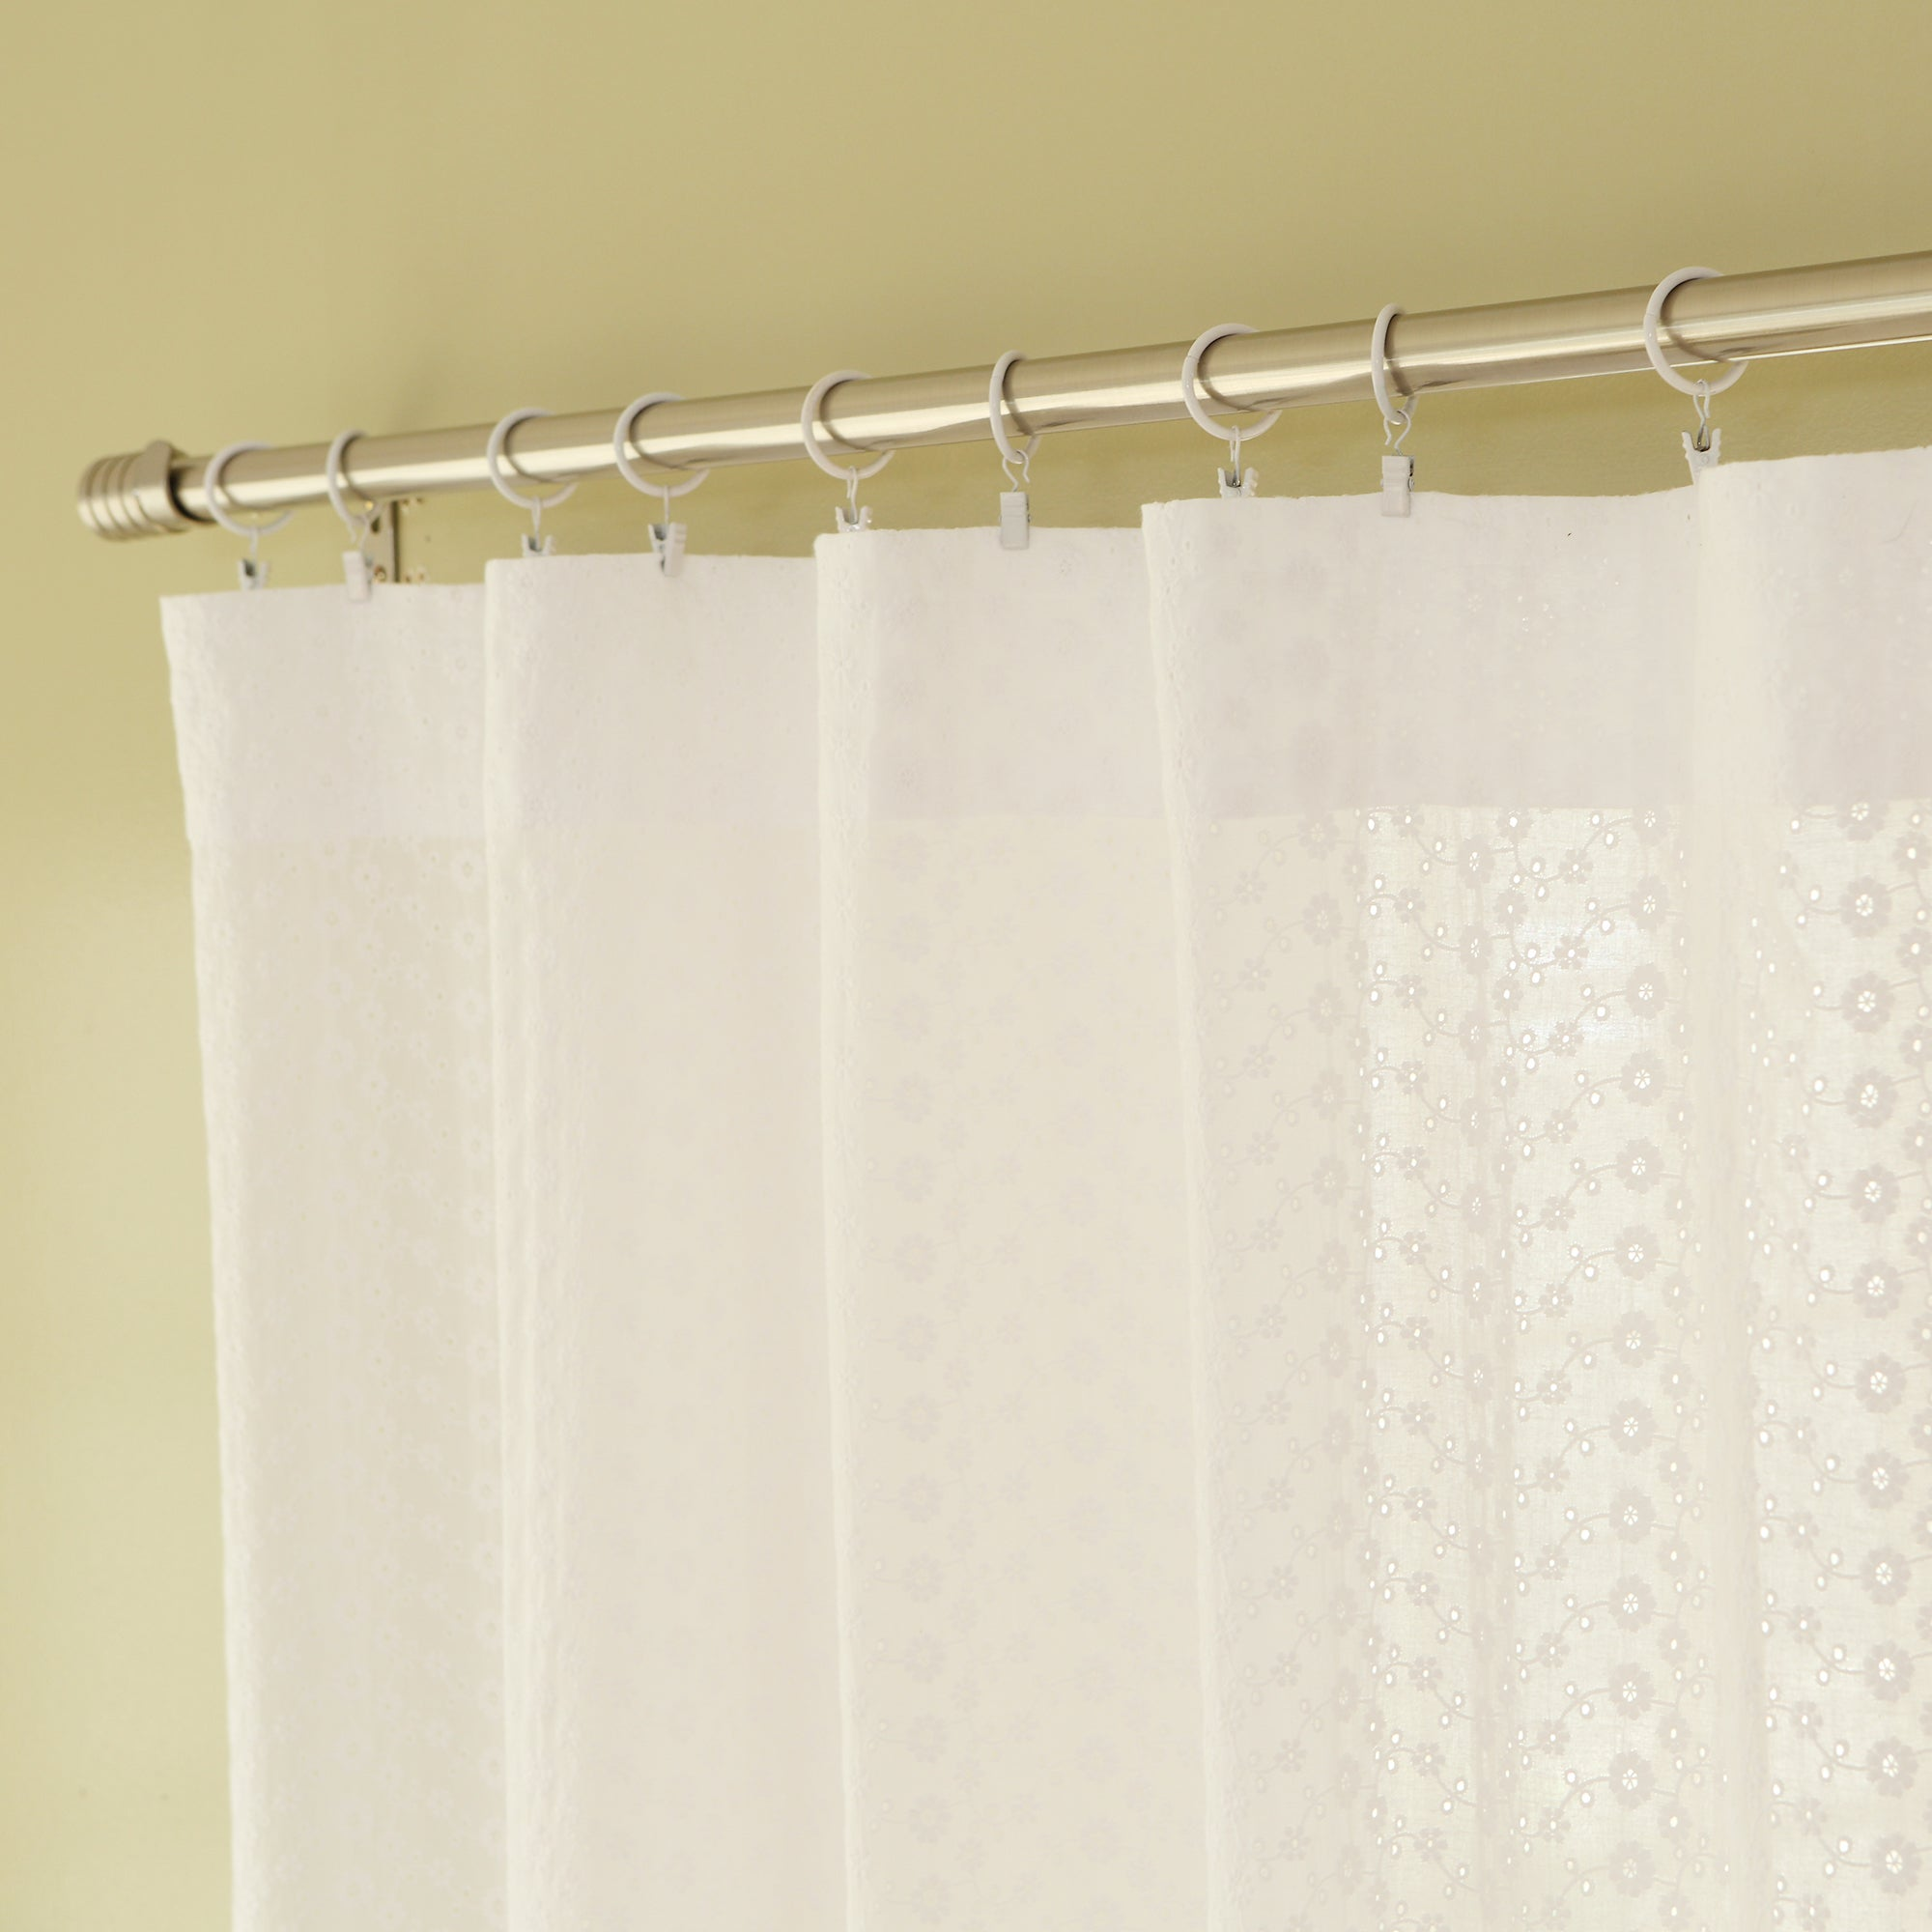 side and curtains size curtain window inside shades door full rods front mini glass roller blinds coverings of